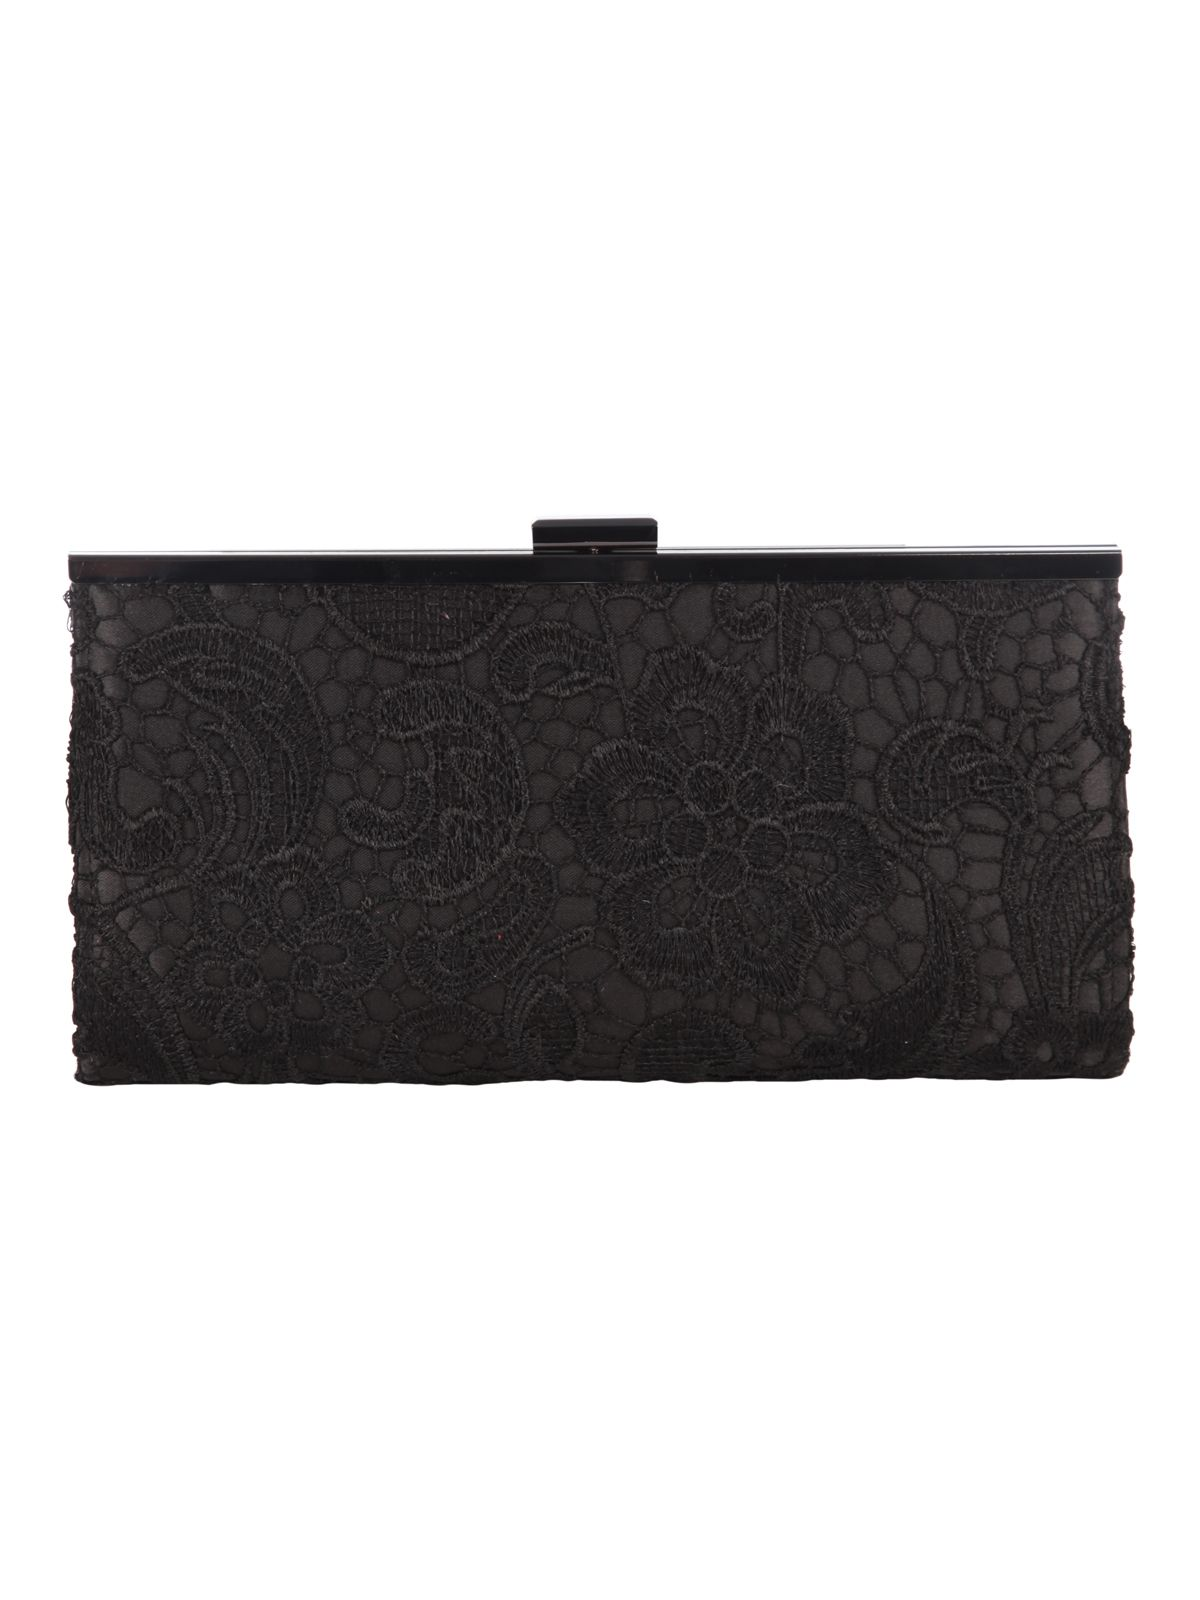 Black Lace Overlay Clutch Bag